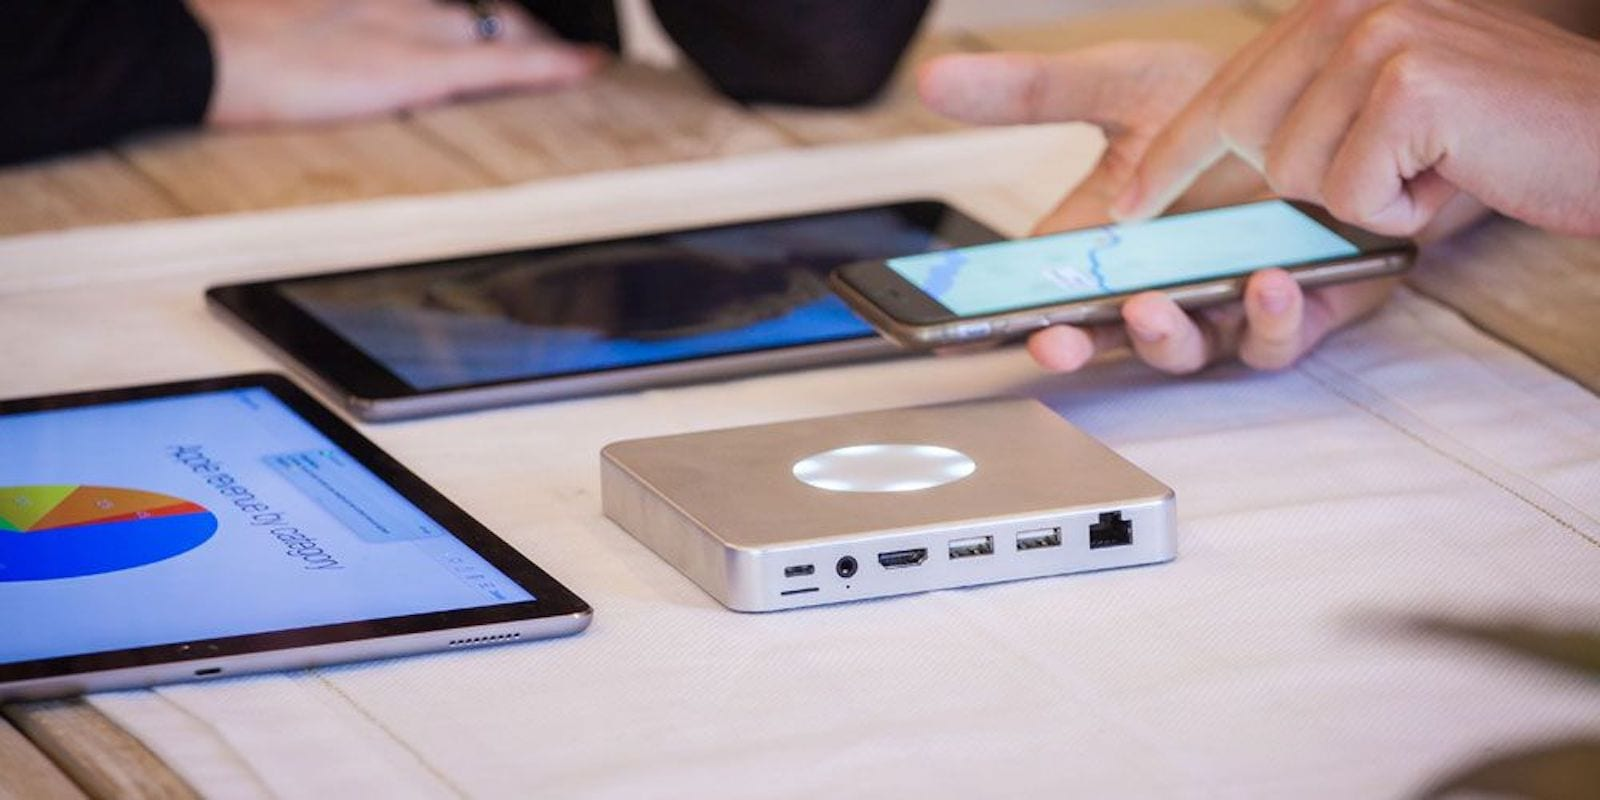 Keep all your and your team's devices connected and charged with a single, massively useful hub.